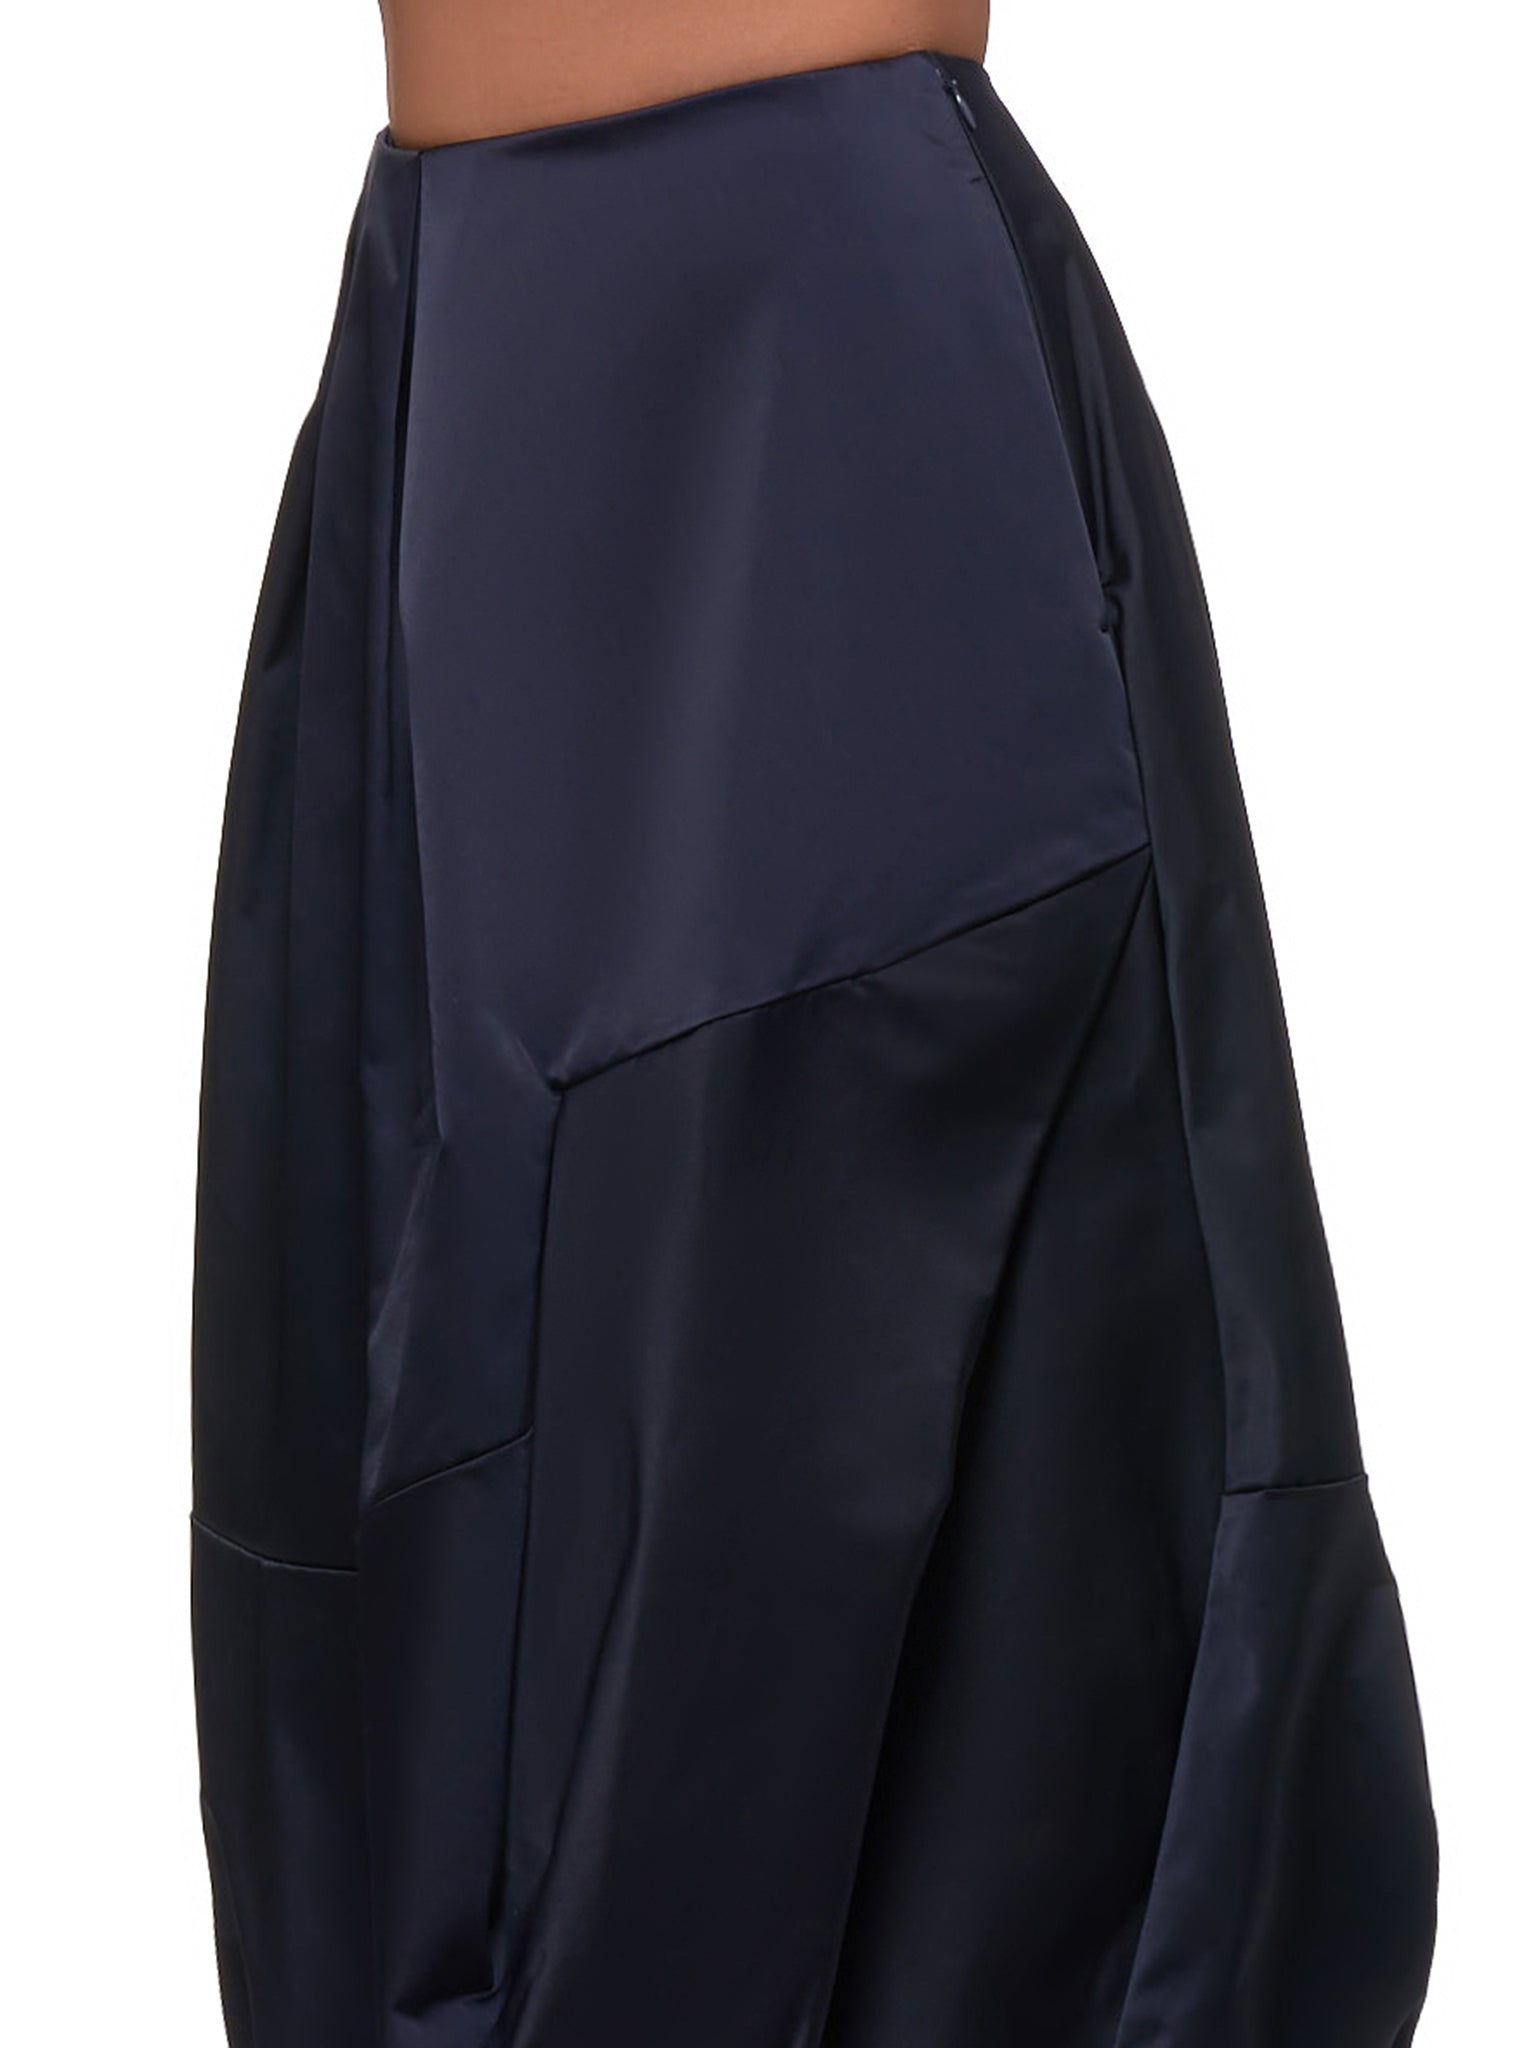 Enfold Skirt - Hlorenzo Detail 1